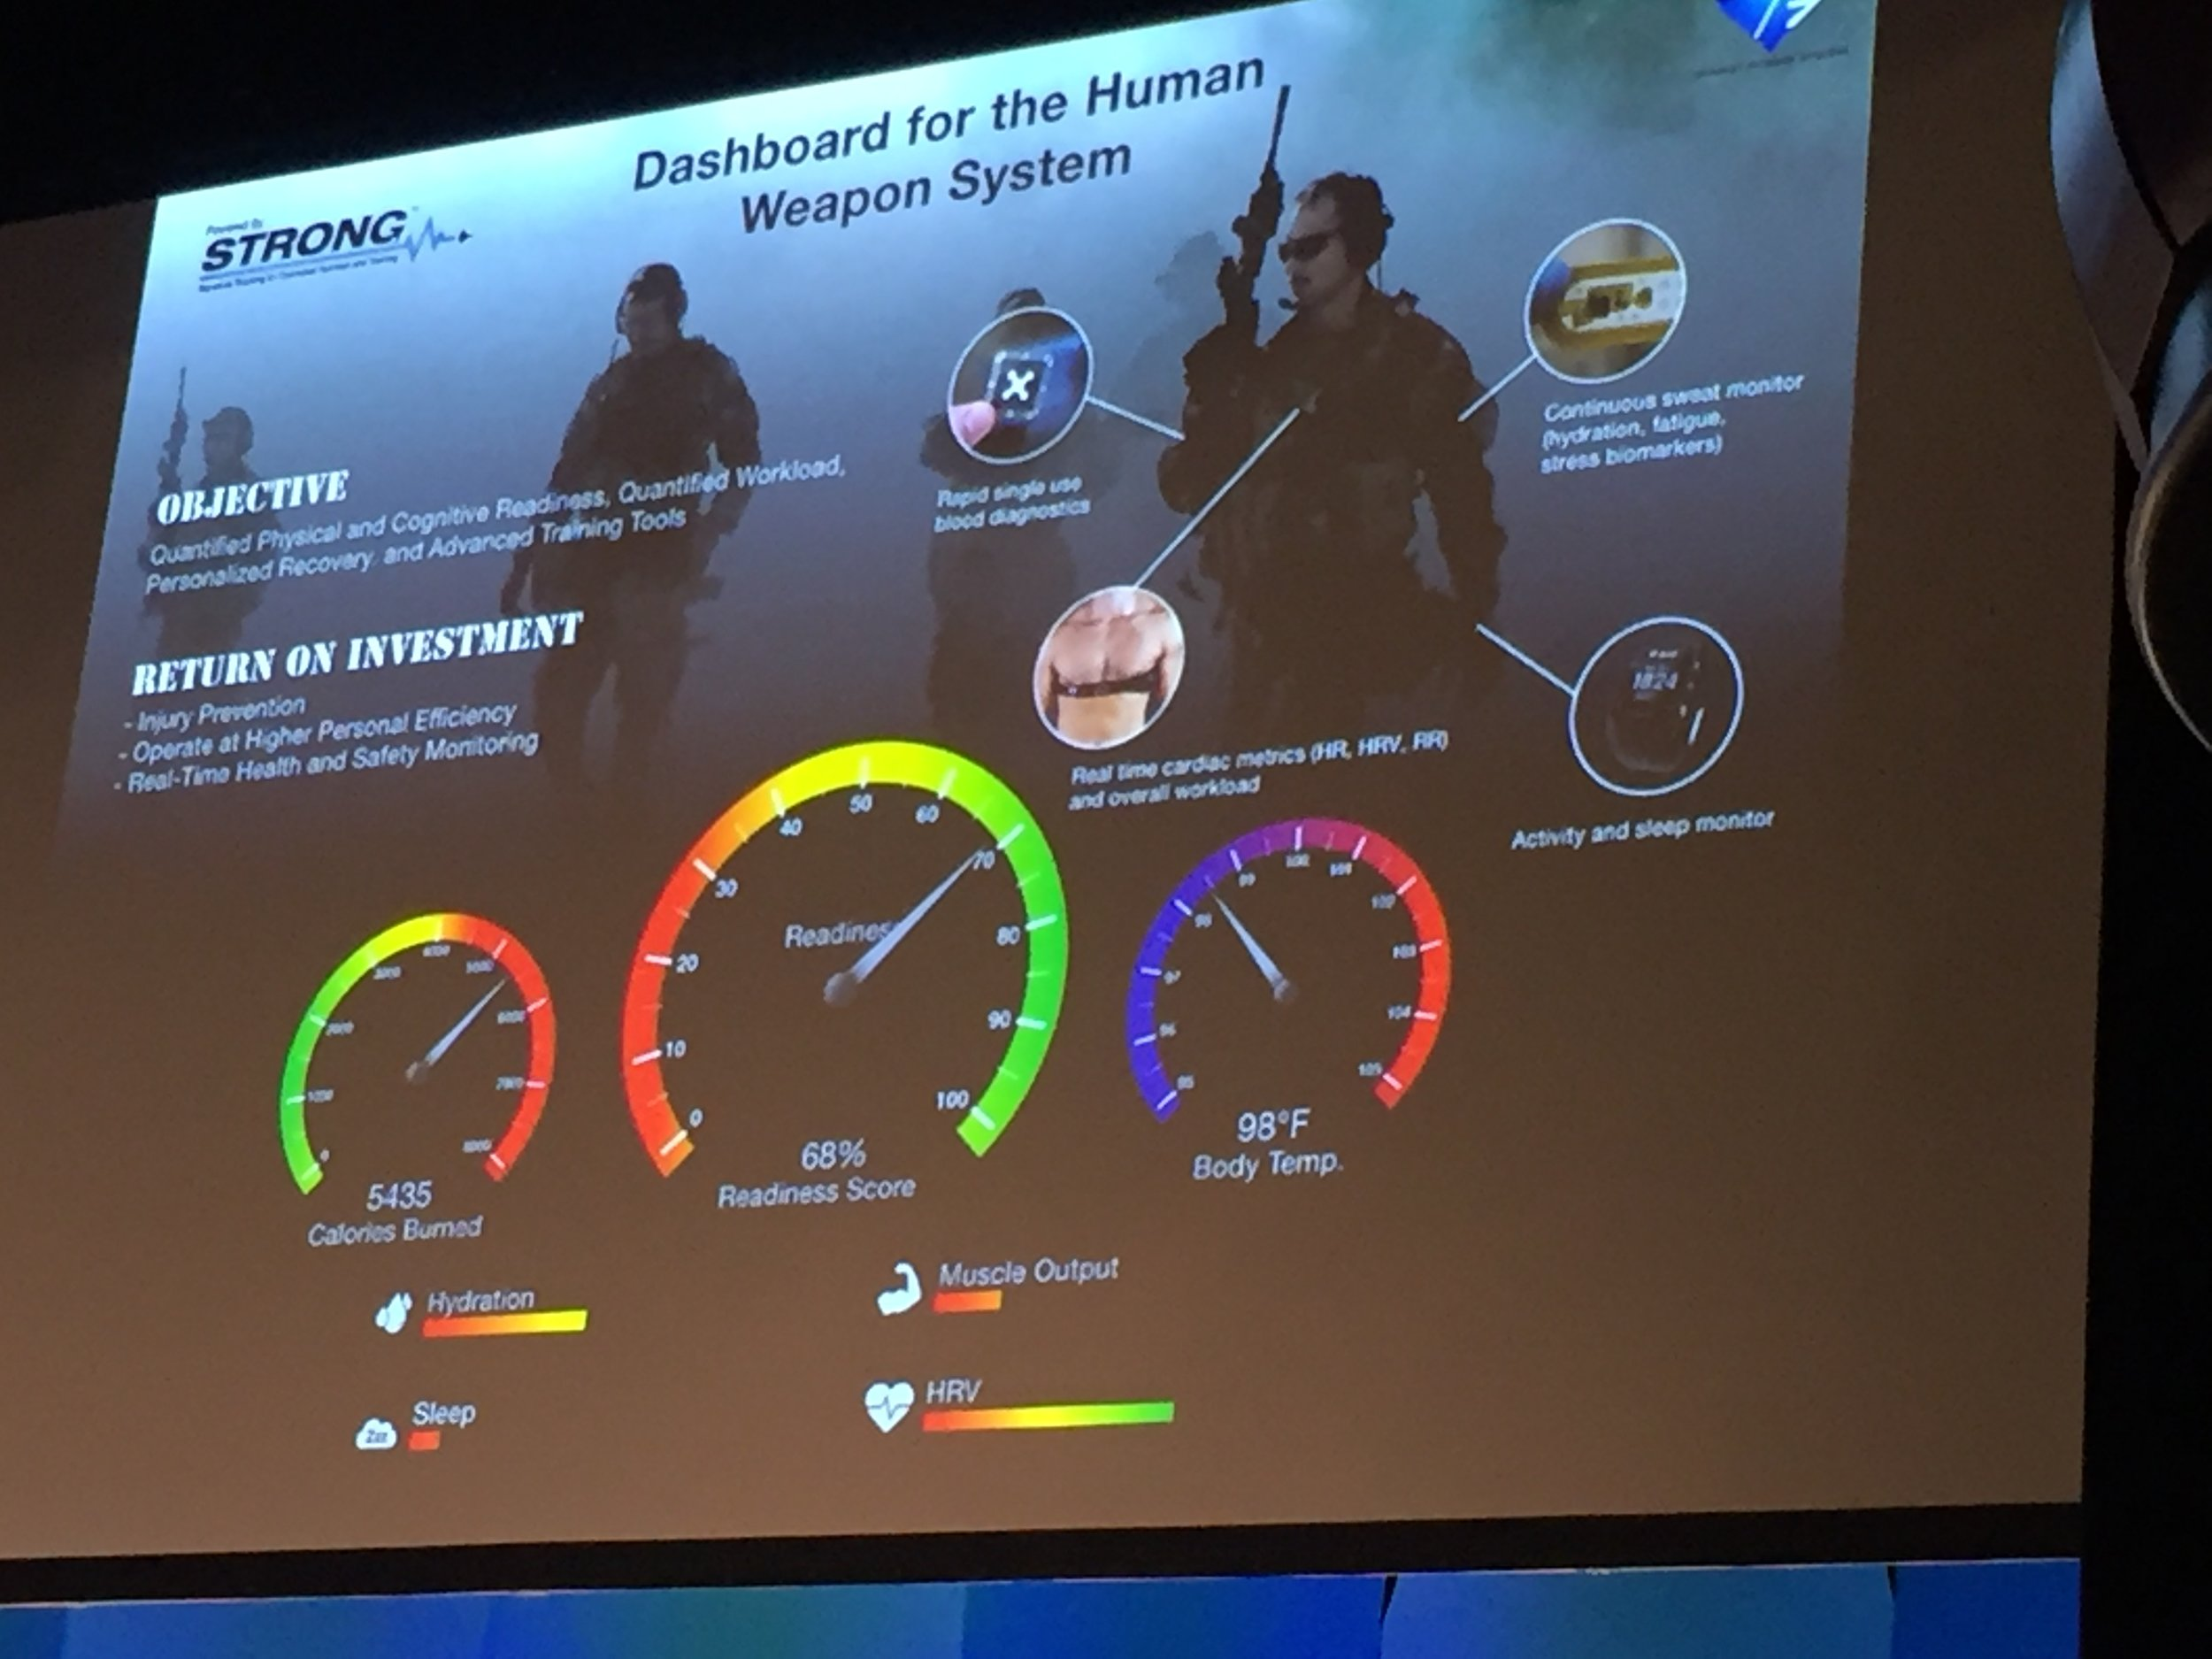 Dashboard for the Human Weapons System